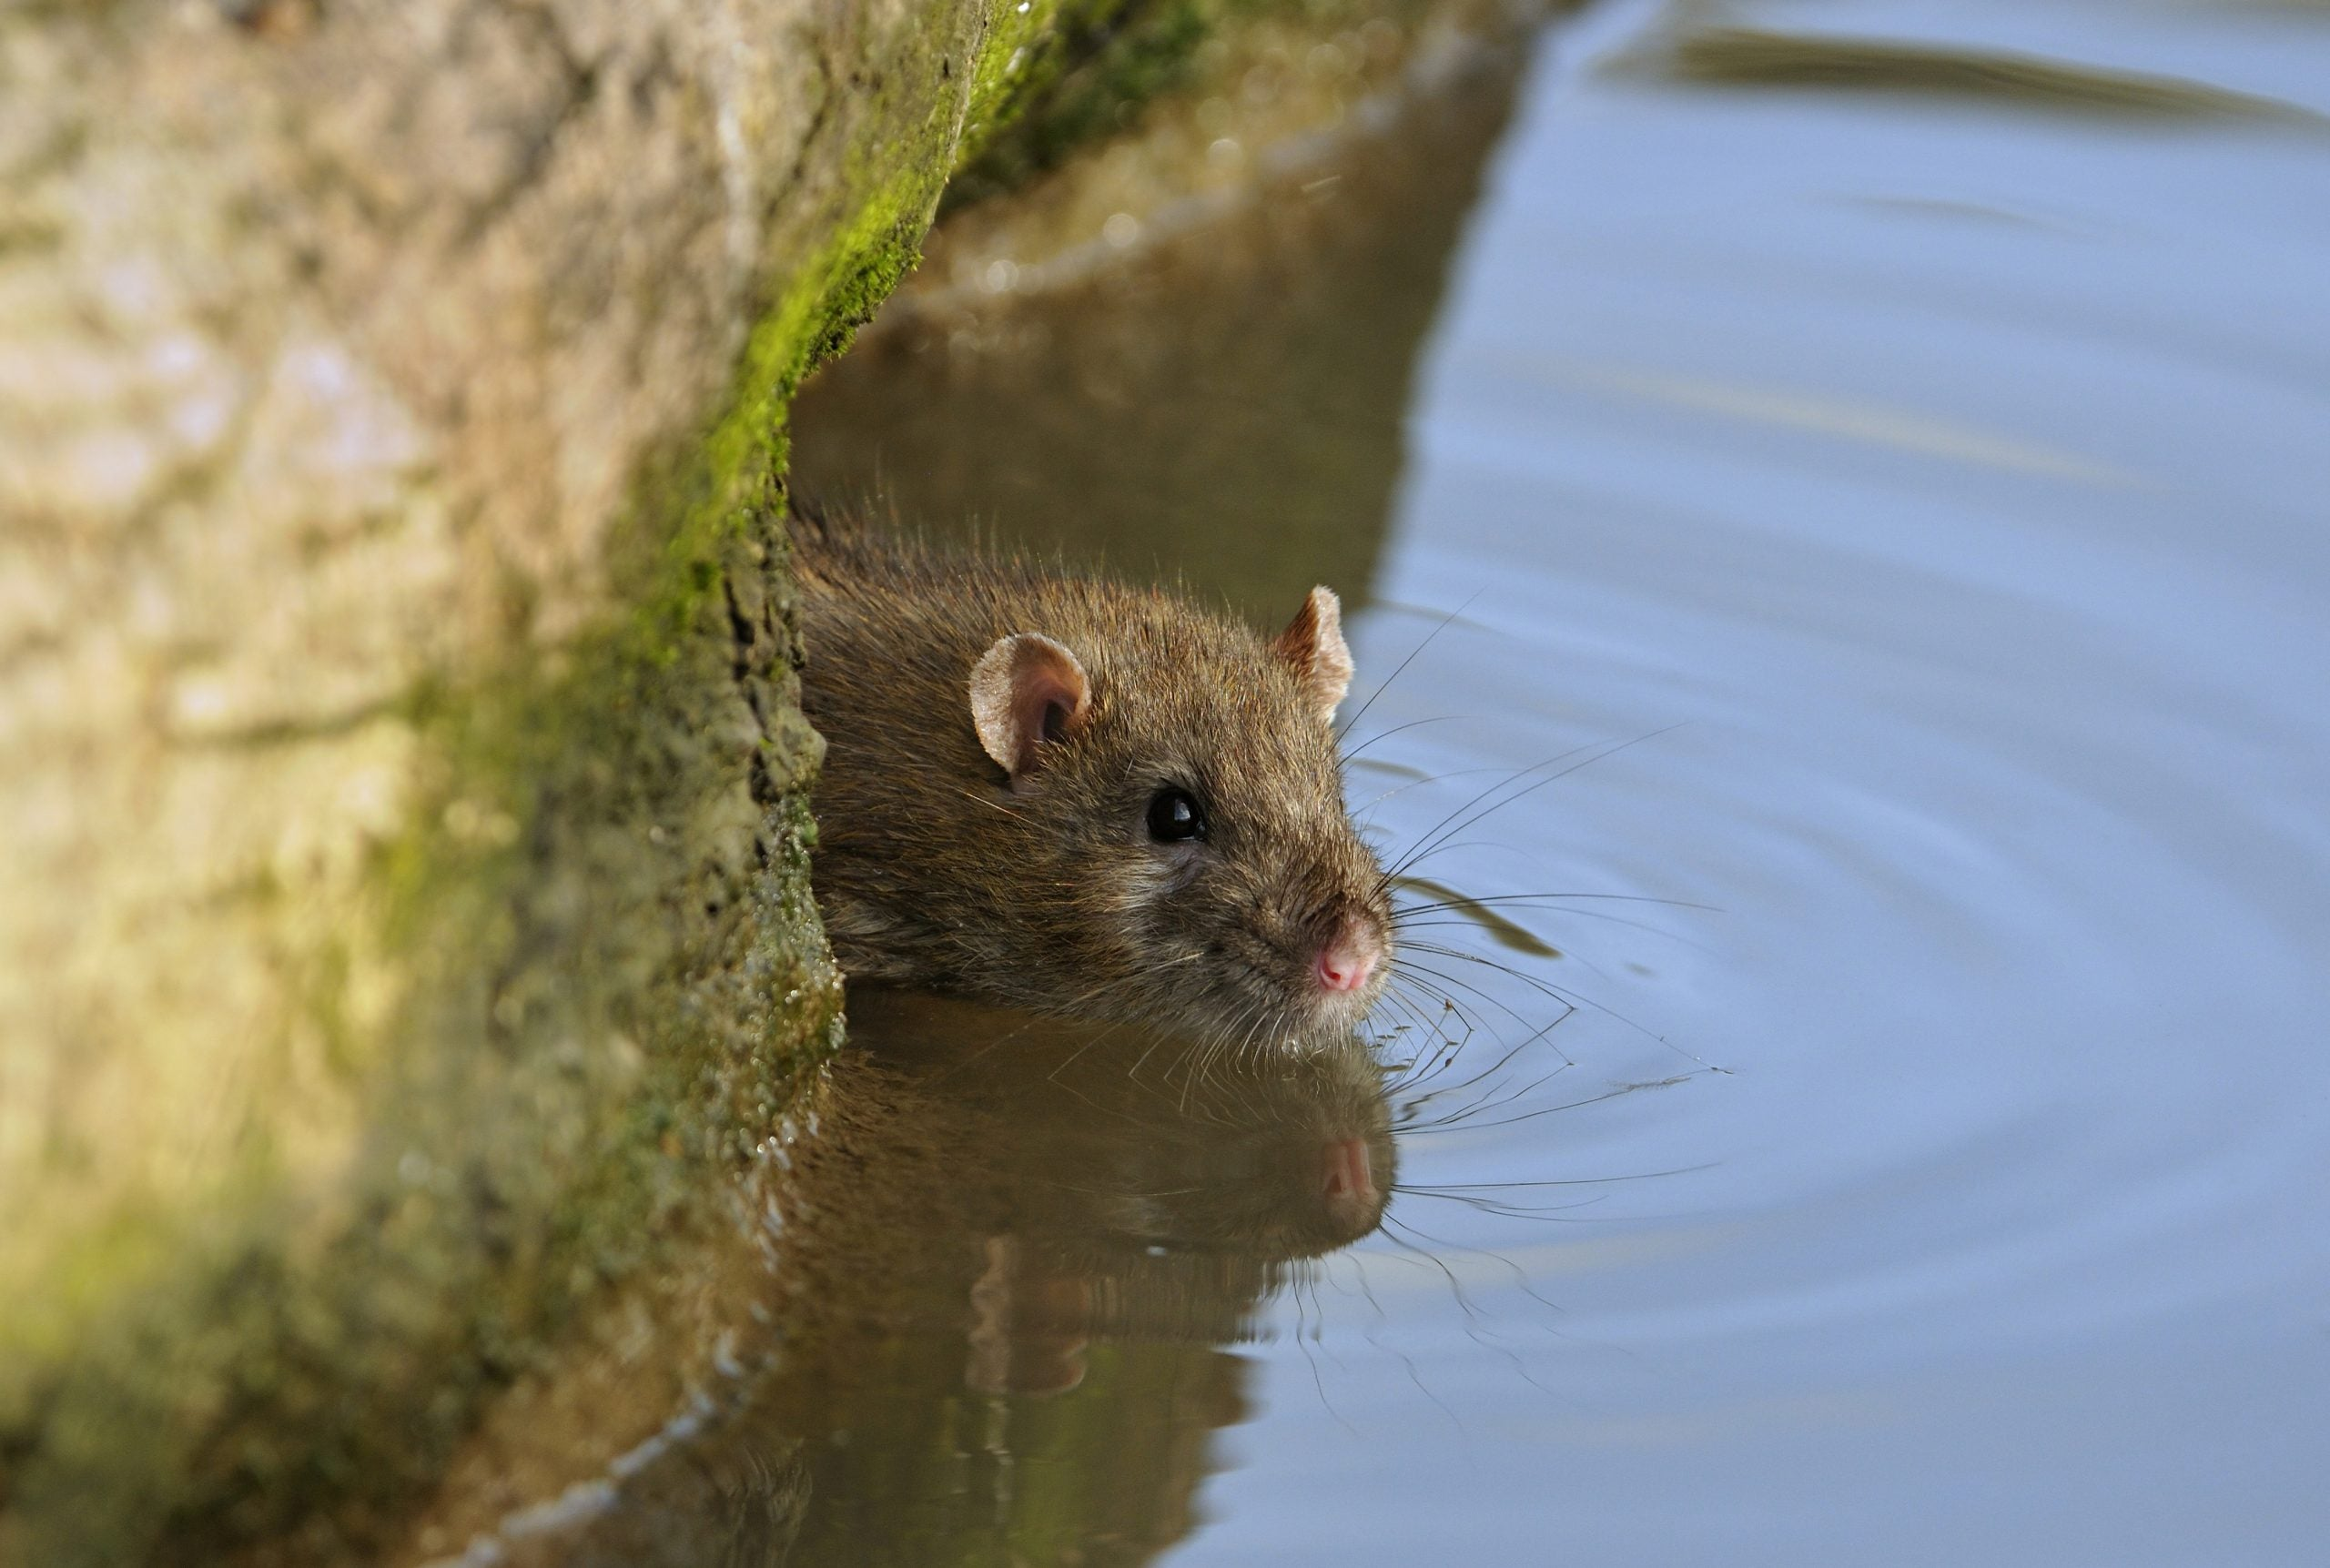 It's a boom time for rats, as those of us who live on boats already know